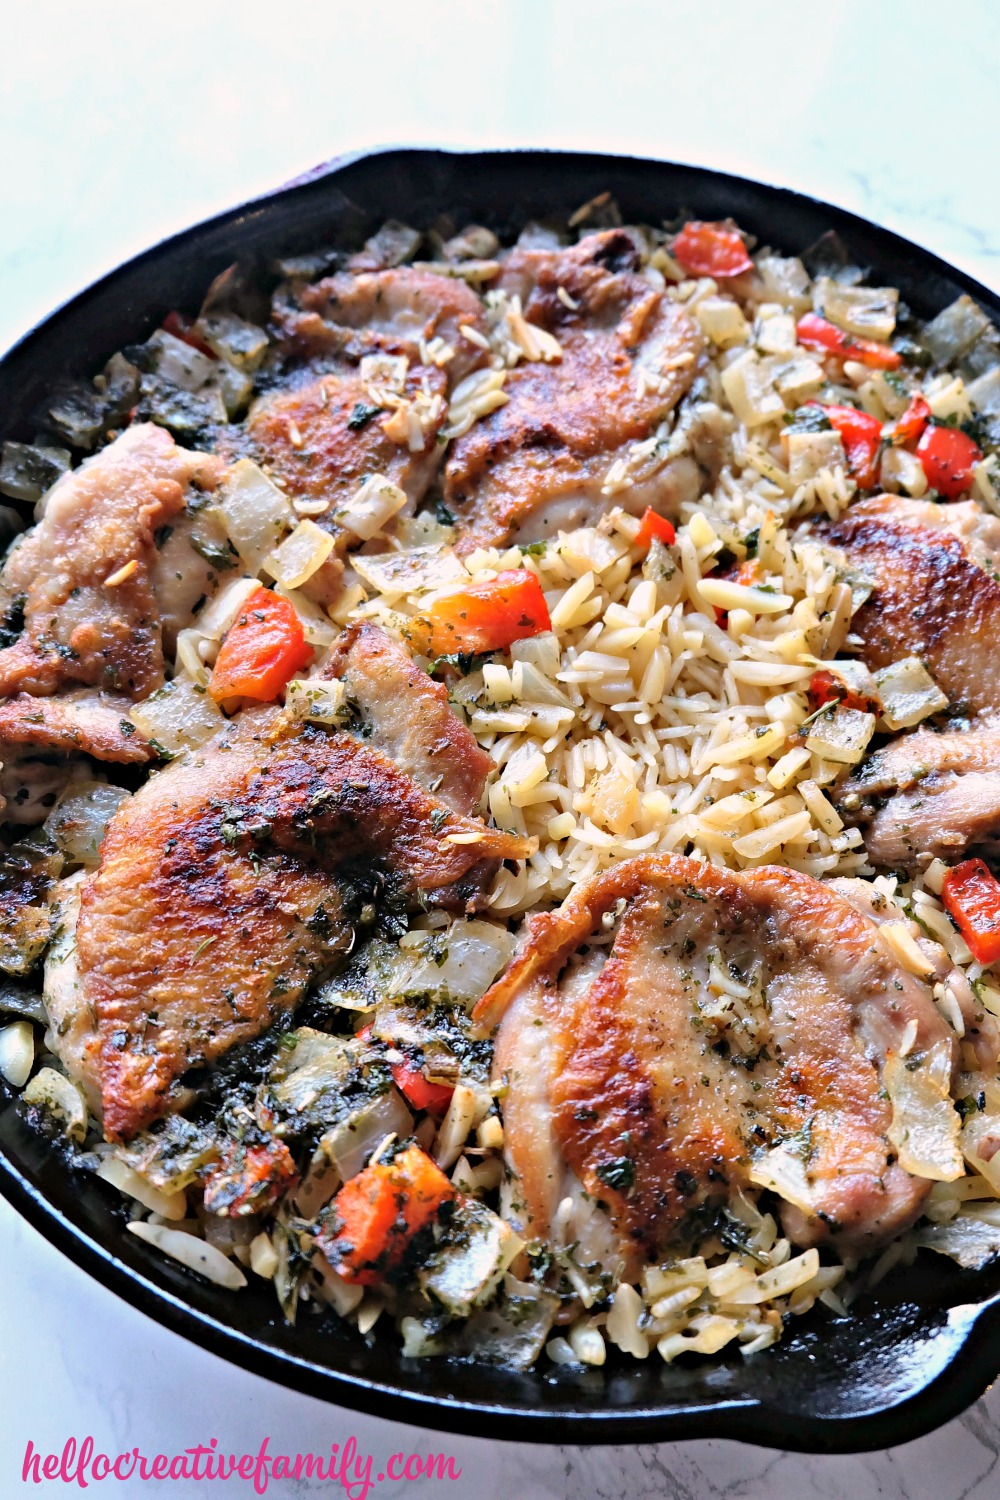 This one pot, 30 minute meal is sure to be a hit for the whole family! Made with deboned chicken thighs, this Greek lemon chicken with rice recipe is a favorite with adults and kids alike! It cooks up in about 20 minutes giving you extra time to put together a delicious side dish. Uses all simple recipes you probably have at home!